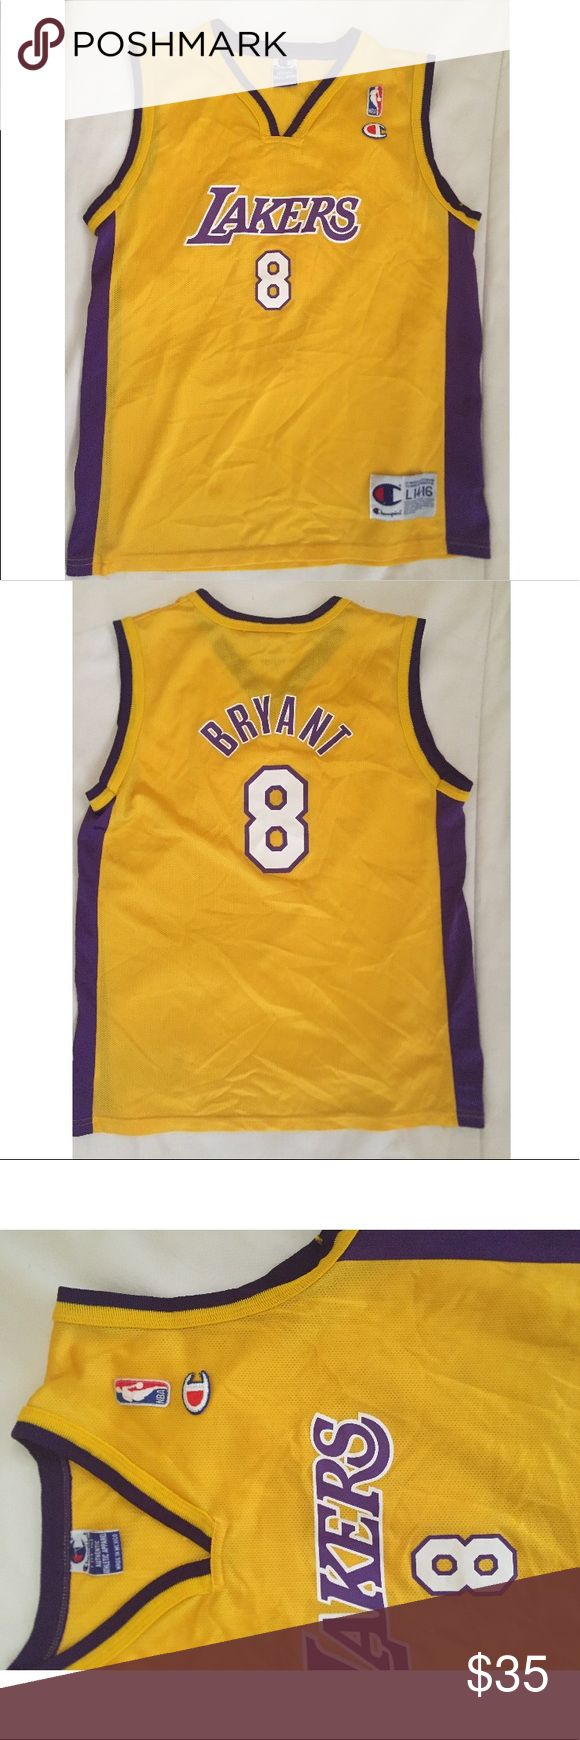 Champion Lakers Kobe Bryant Jersey Vintage. Youth Size 14-16 Could Fit Woman Or Men Small. Authentic. Still In Excellent Condition! Champion Other